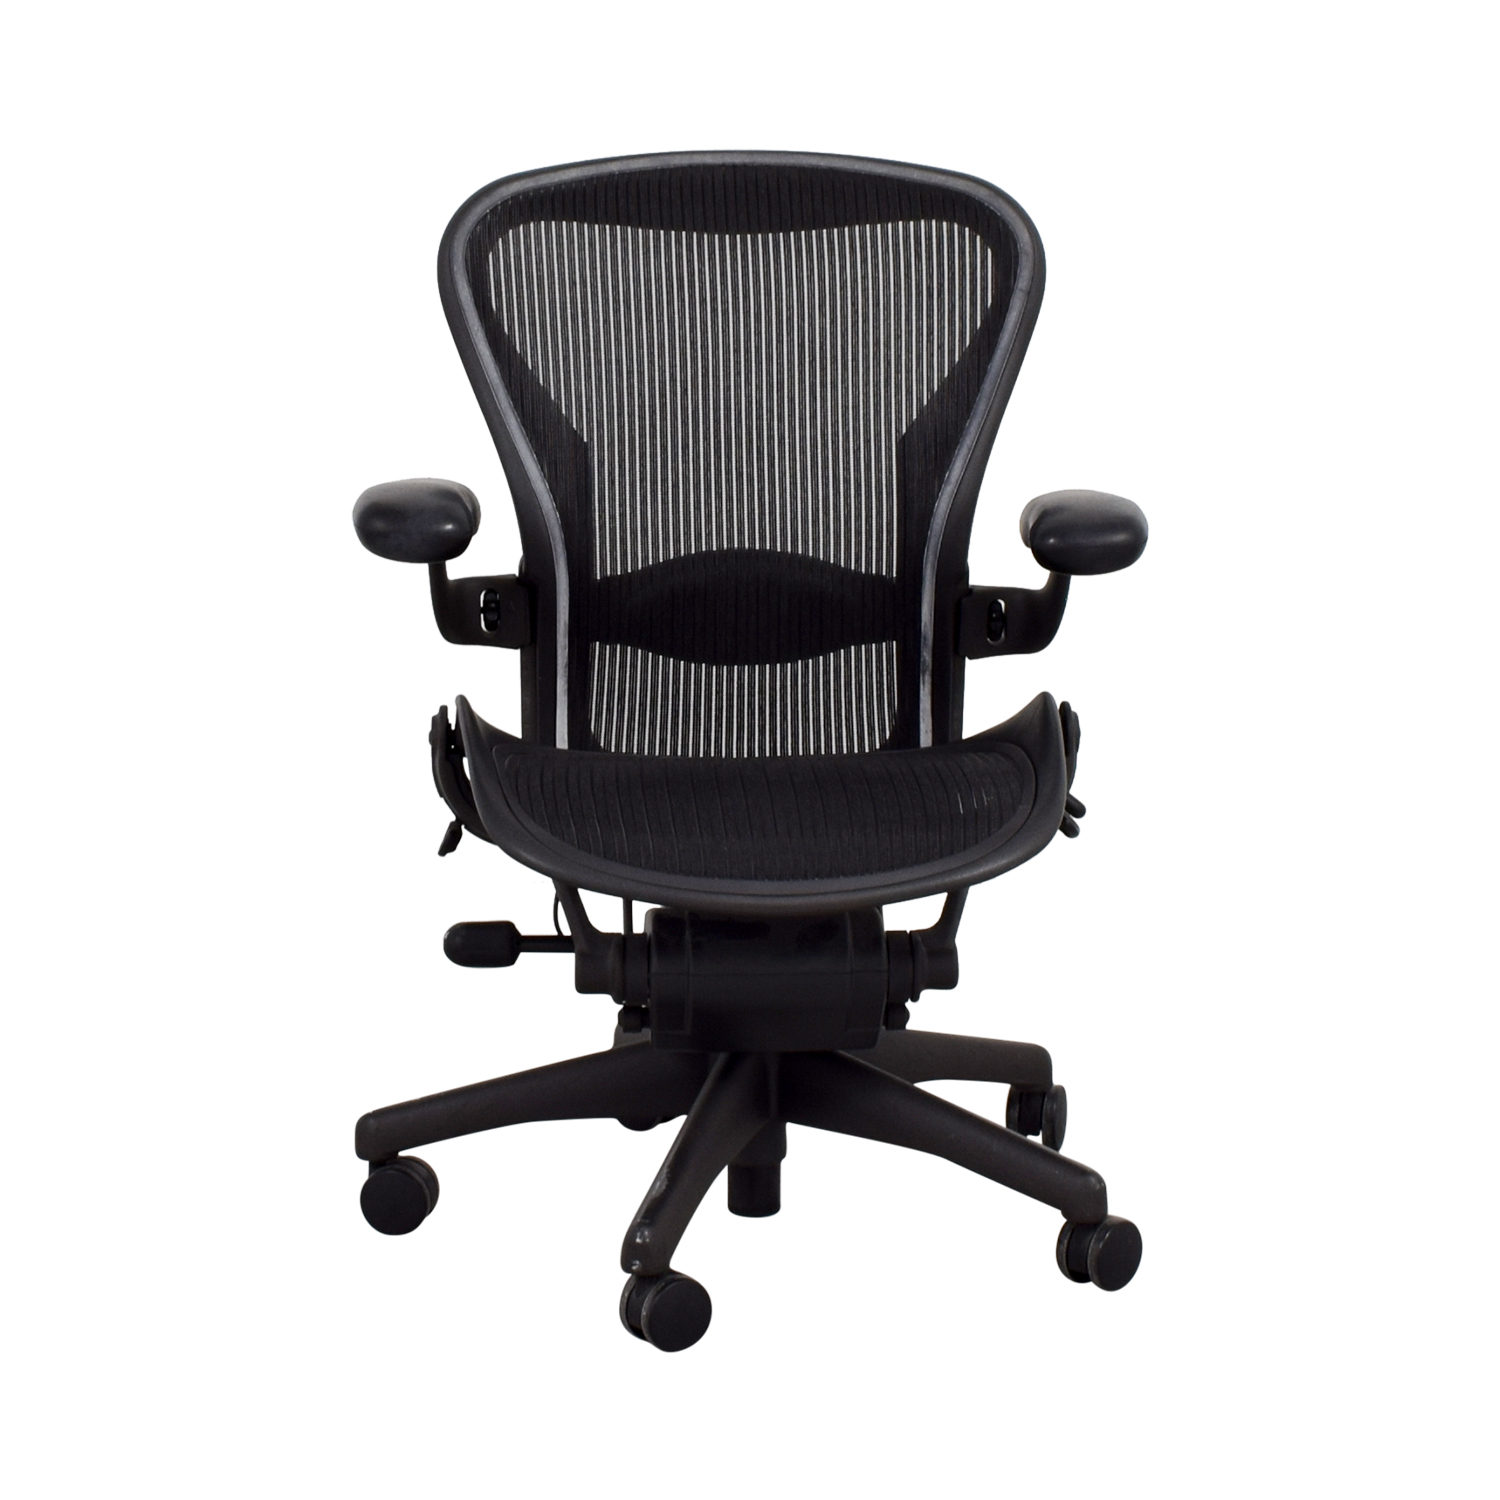 Herman Miller Aeron Miller Black Desk Chair sale